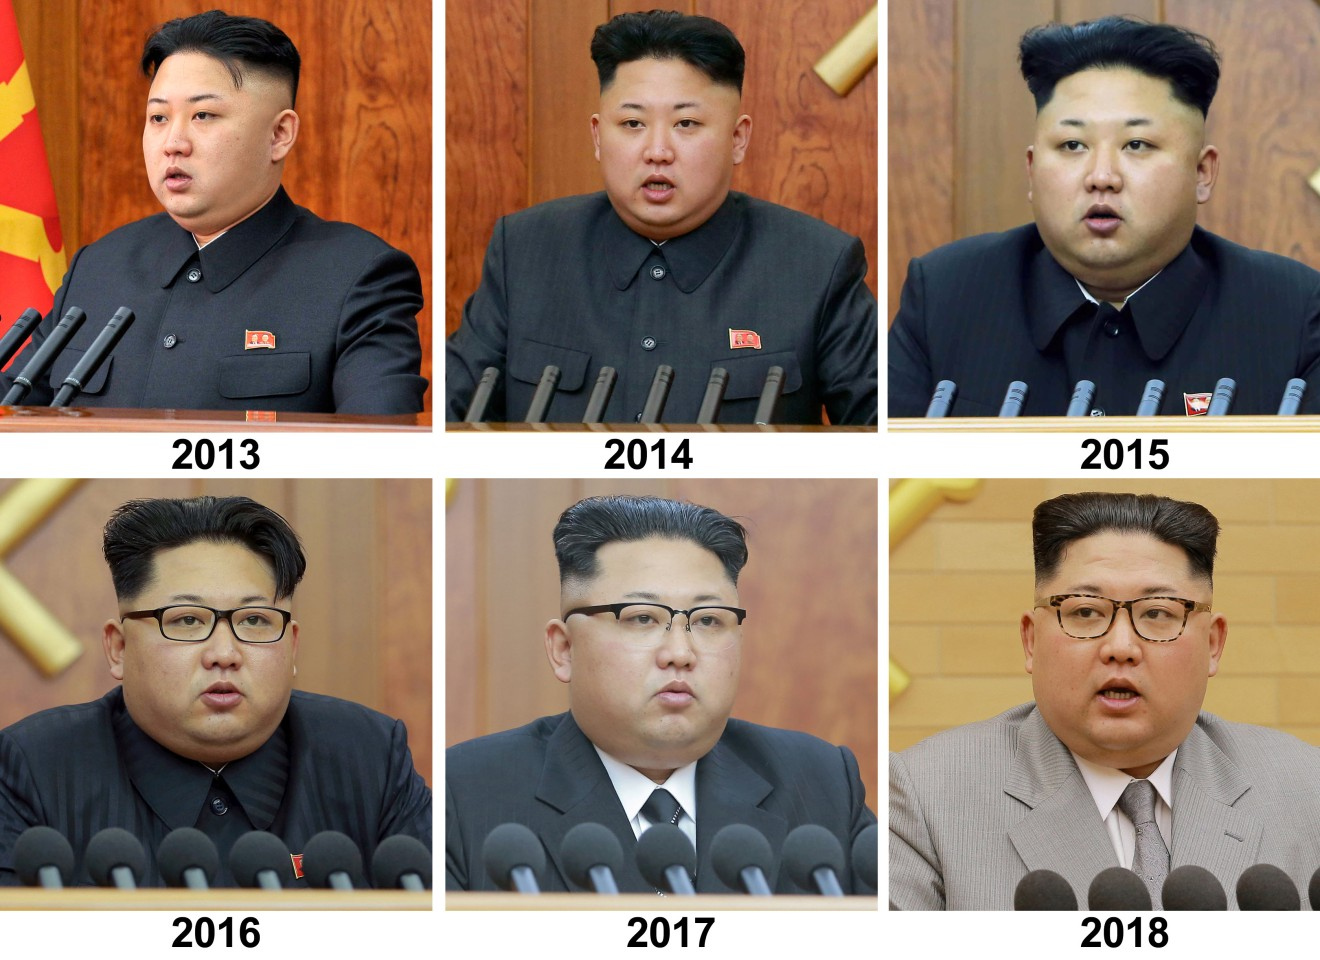 Photos of Kim Jong-un giving his New Year address from 2013 to 2018.